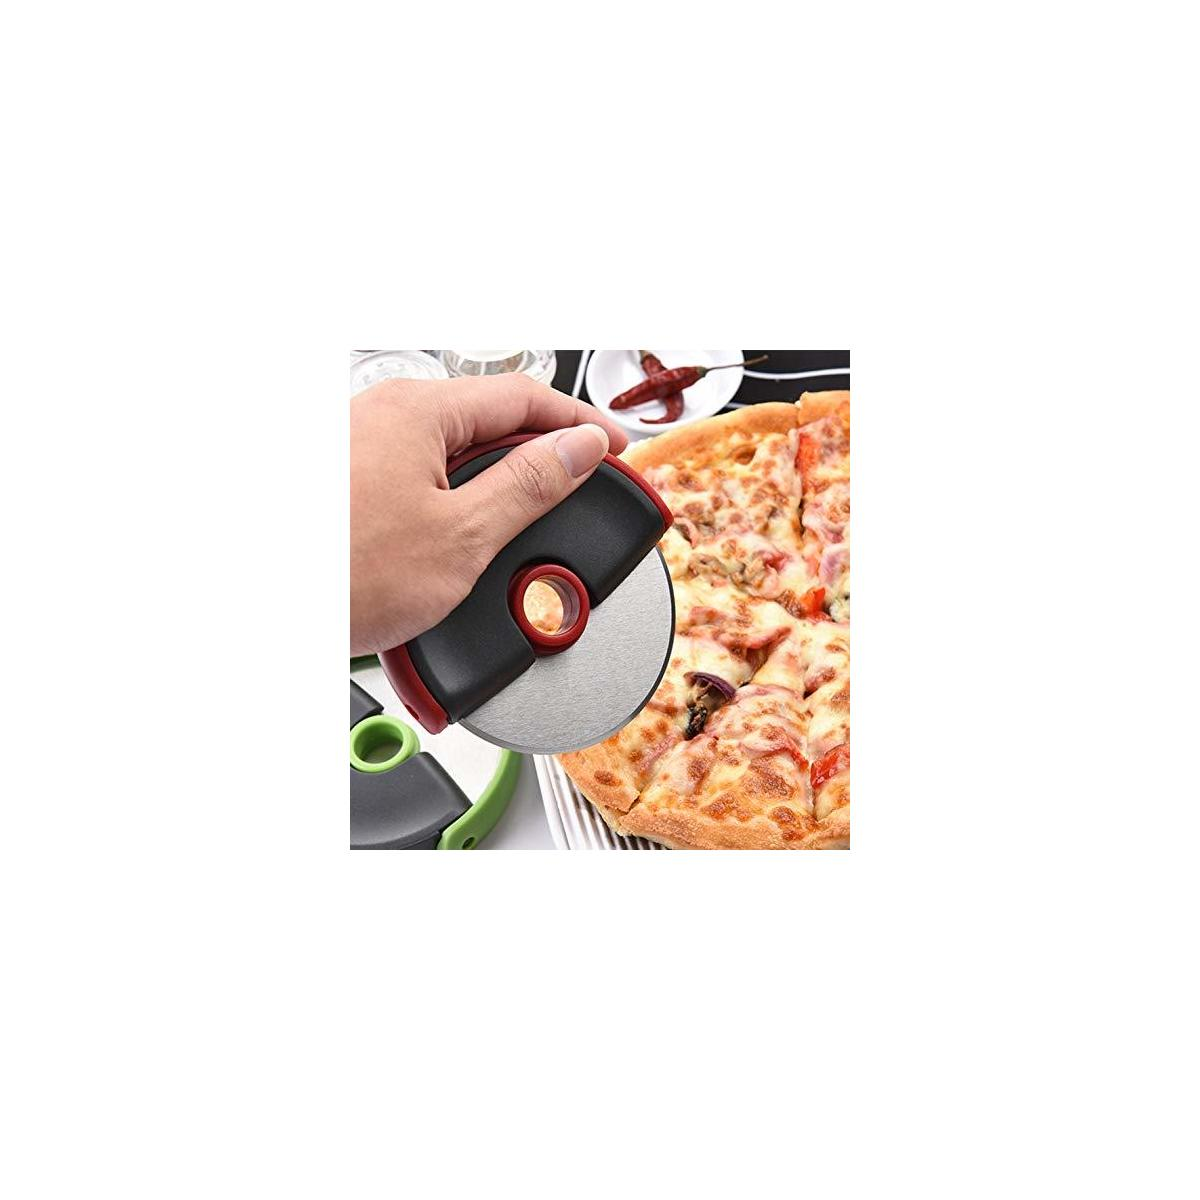 Stainless Steel Pizza Cutter Wheel, Slicer with Protective Blade Cover Guard, Ideal Kitchen/Household Gadget -Super Sharp, Durable, Easy Cleanup, (Fire Red)